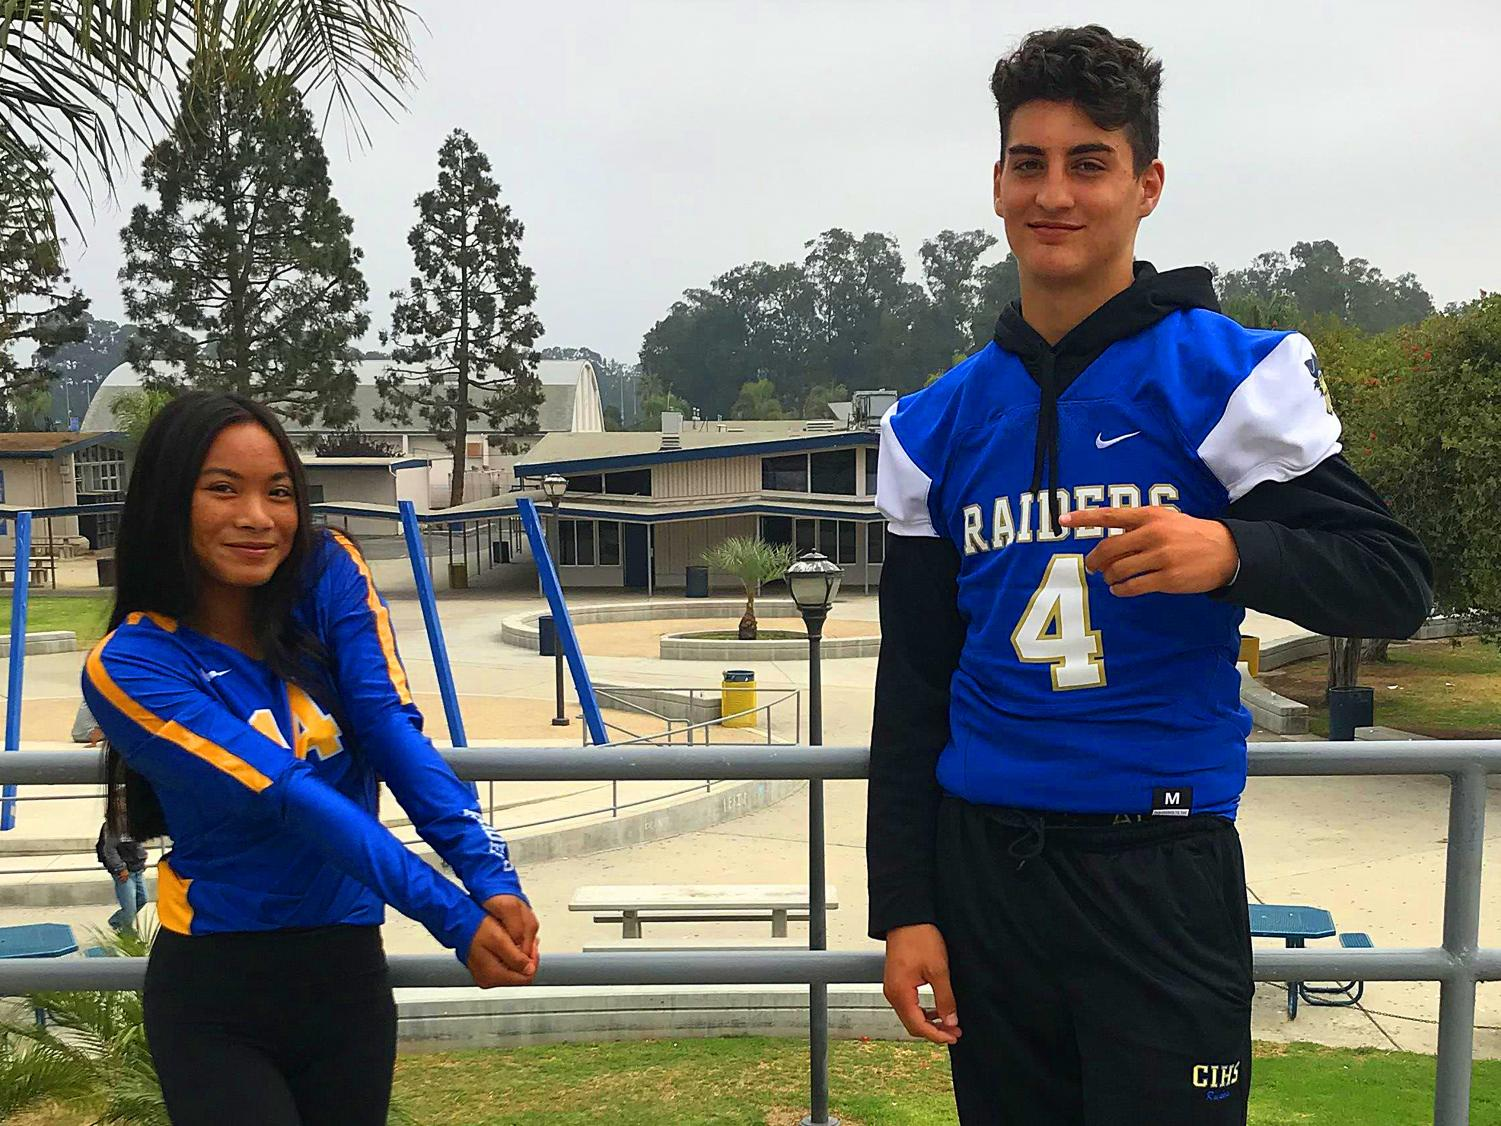 Aylani Madriaga and Cody Hoffman are part of the class of 2022.